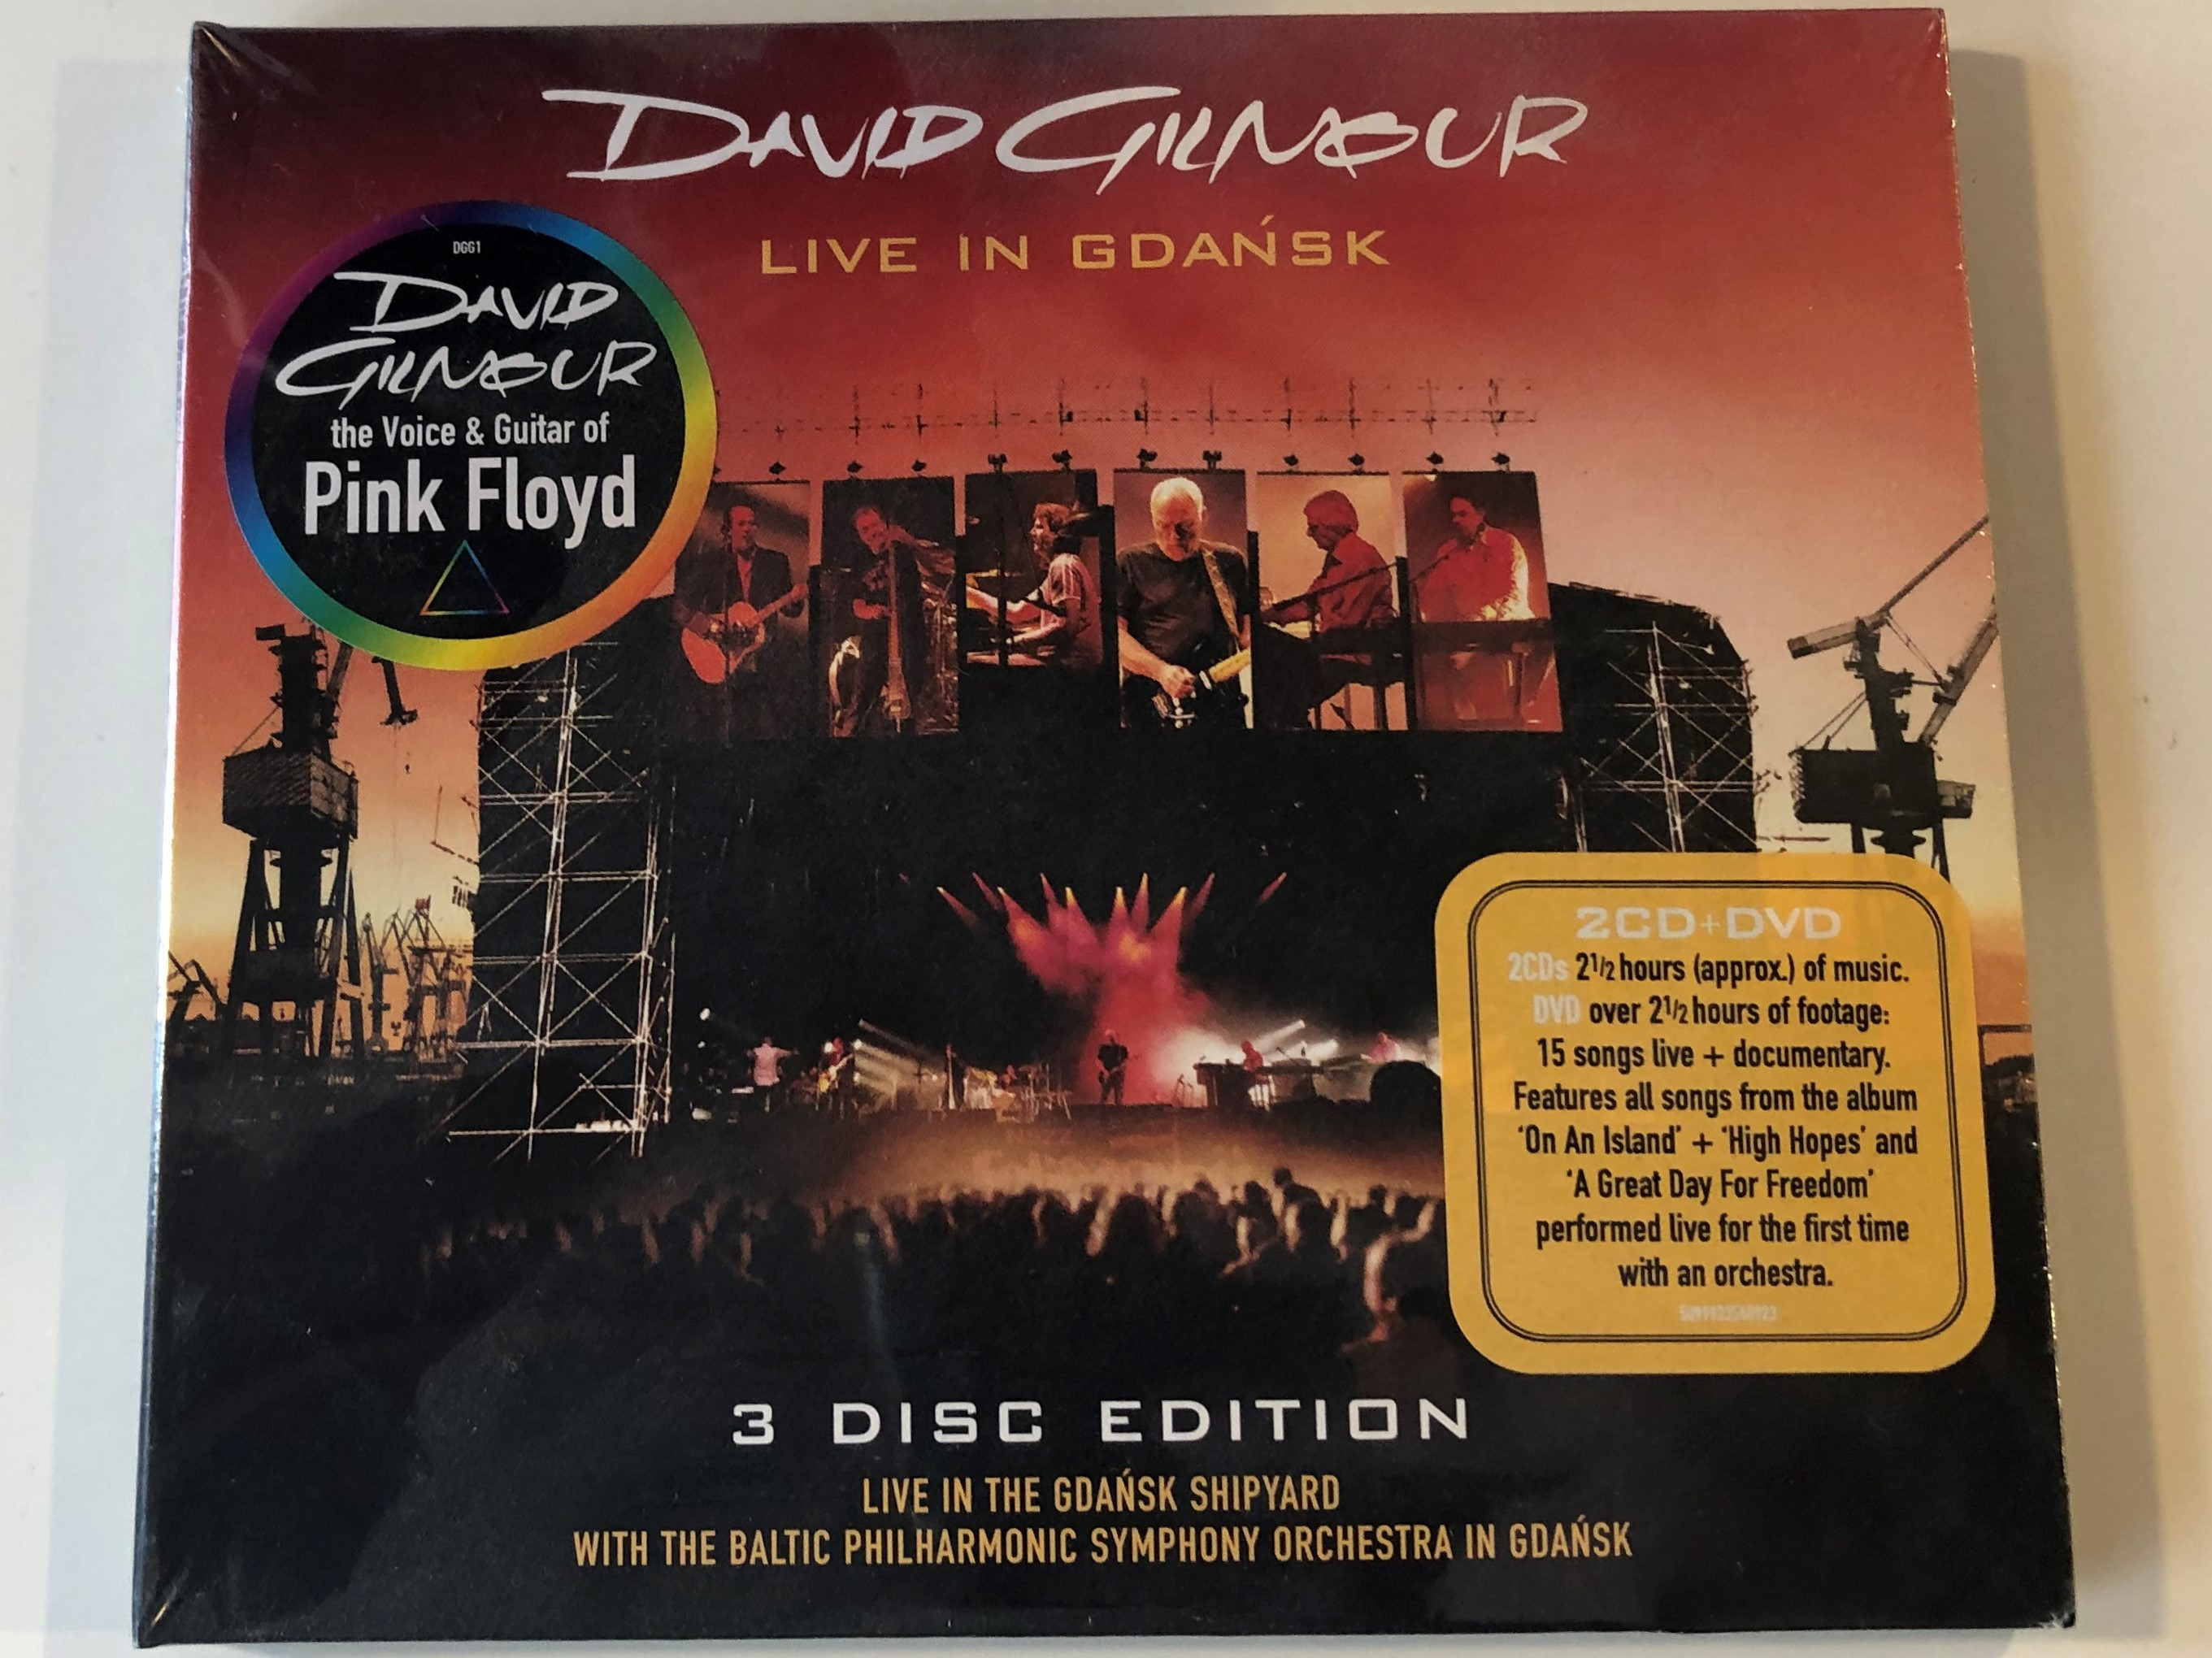 david-gilmour-live-in-gda-sk-3-disc-edition-live-in-the-gda-sk-shipyard-with-the-philharmonic-symphony-orchestra-in-gda-sk-david-gilmour-music-ltd.-audio-cd-20058-5099923548923-1-.jpg